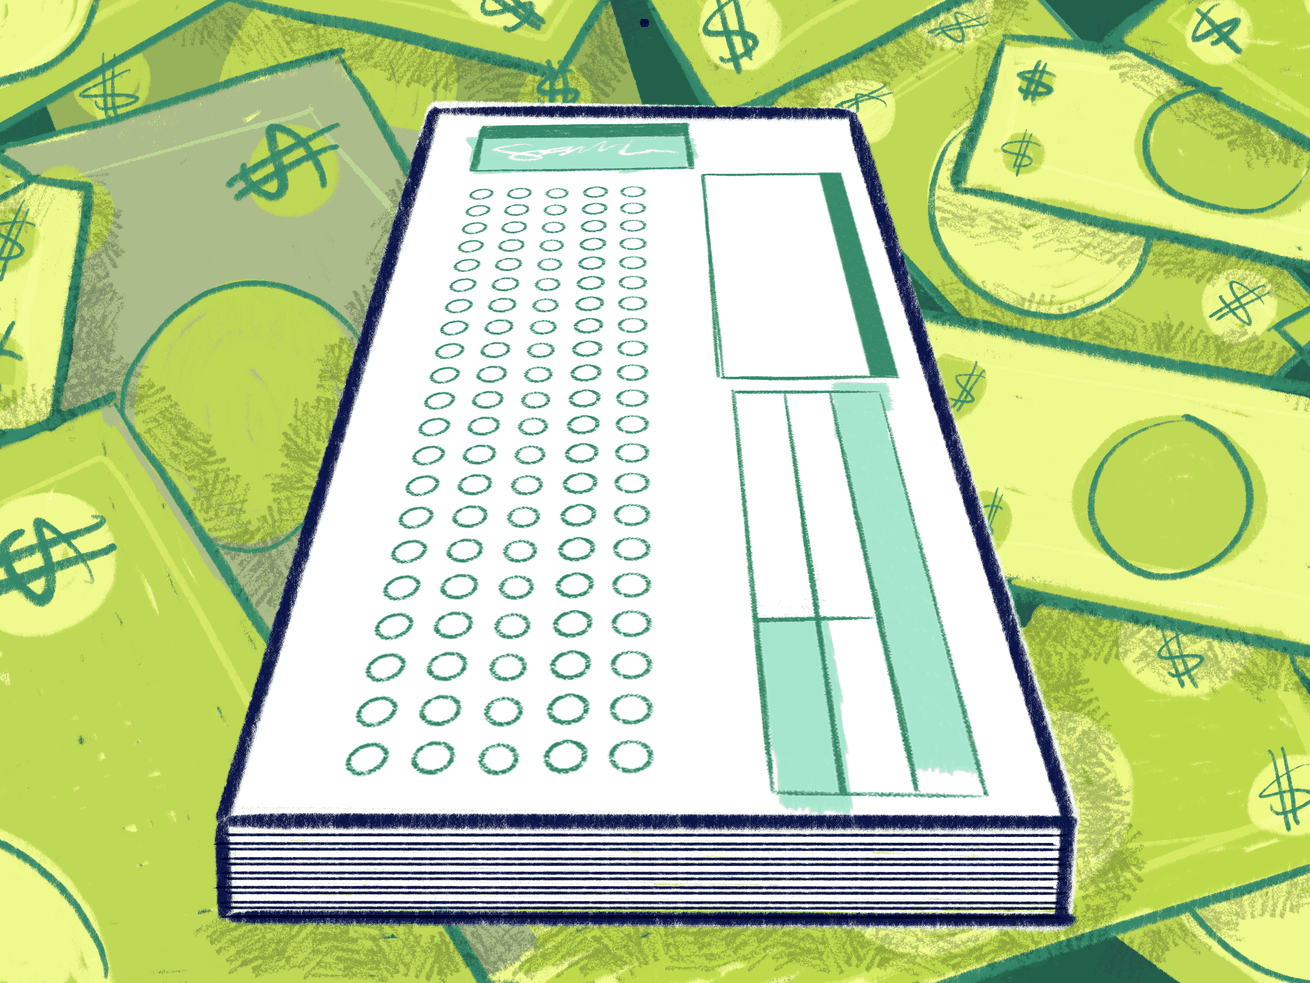 Standardized tests are prohibitively expensive for some students.